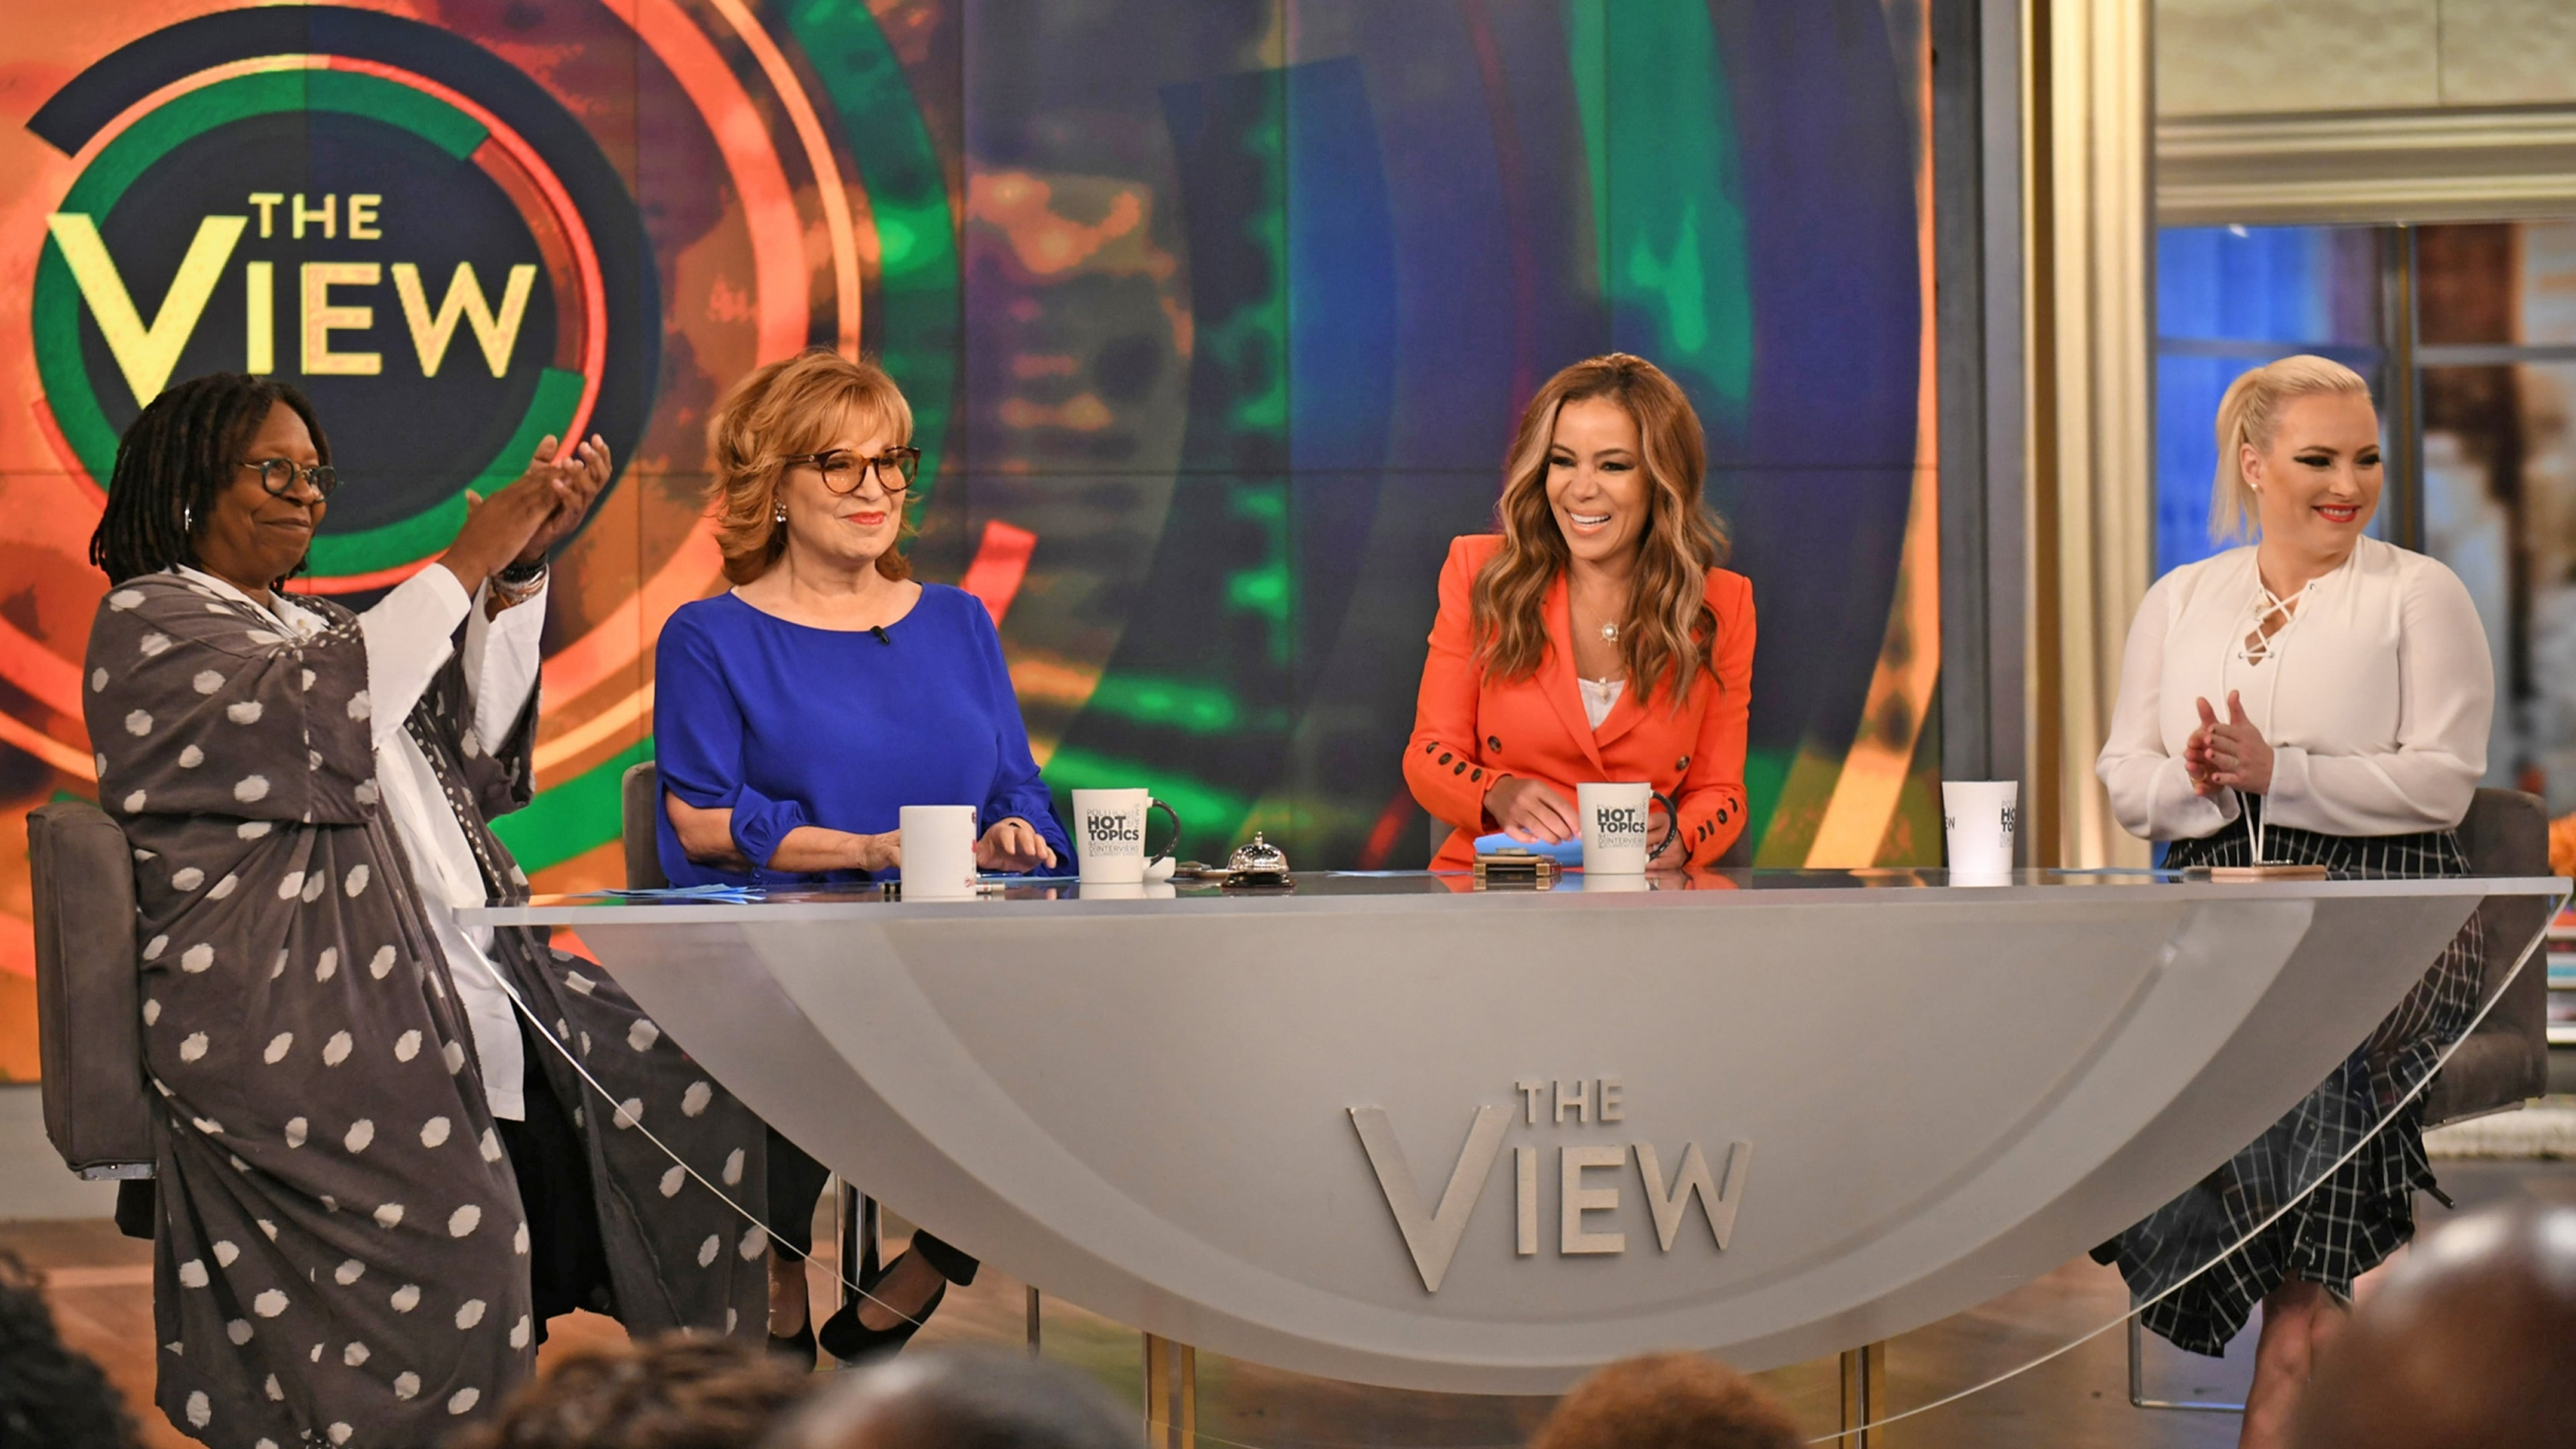 The View - Season 22